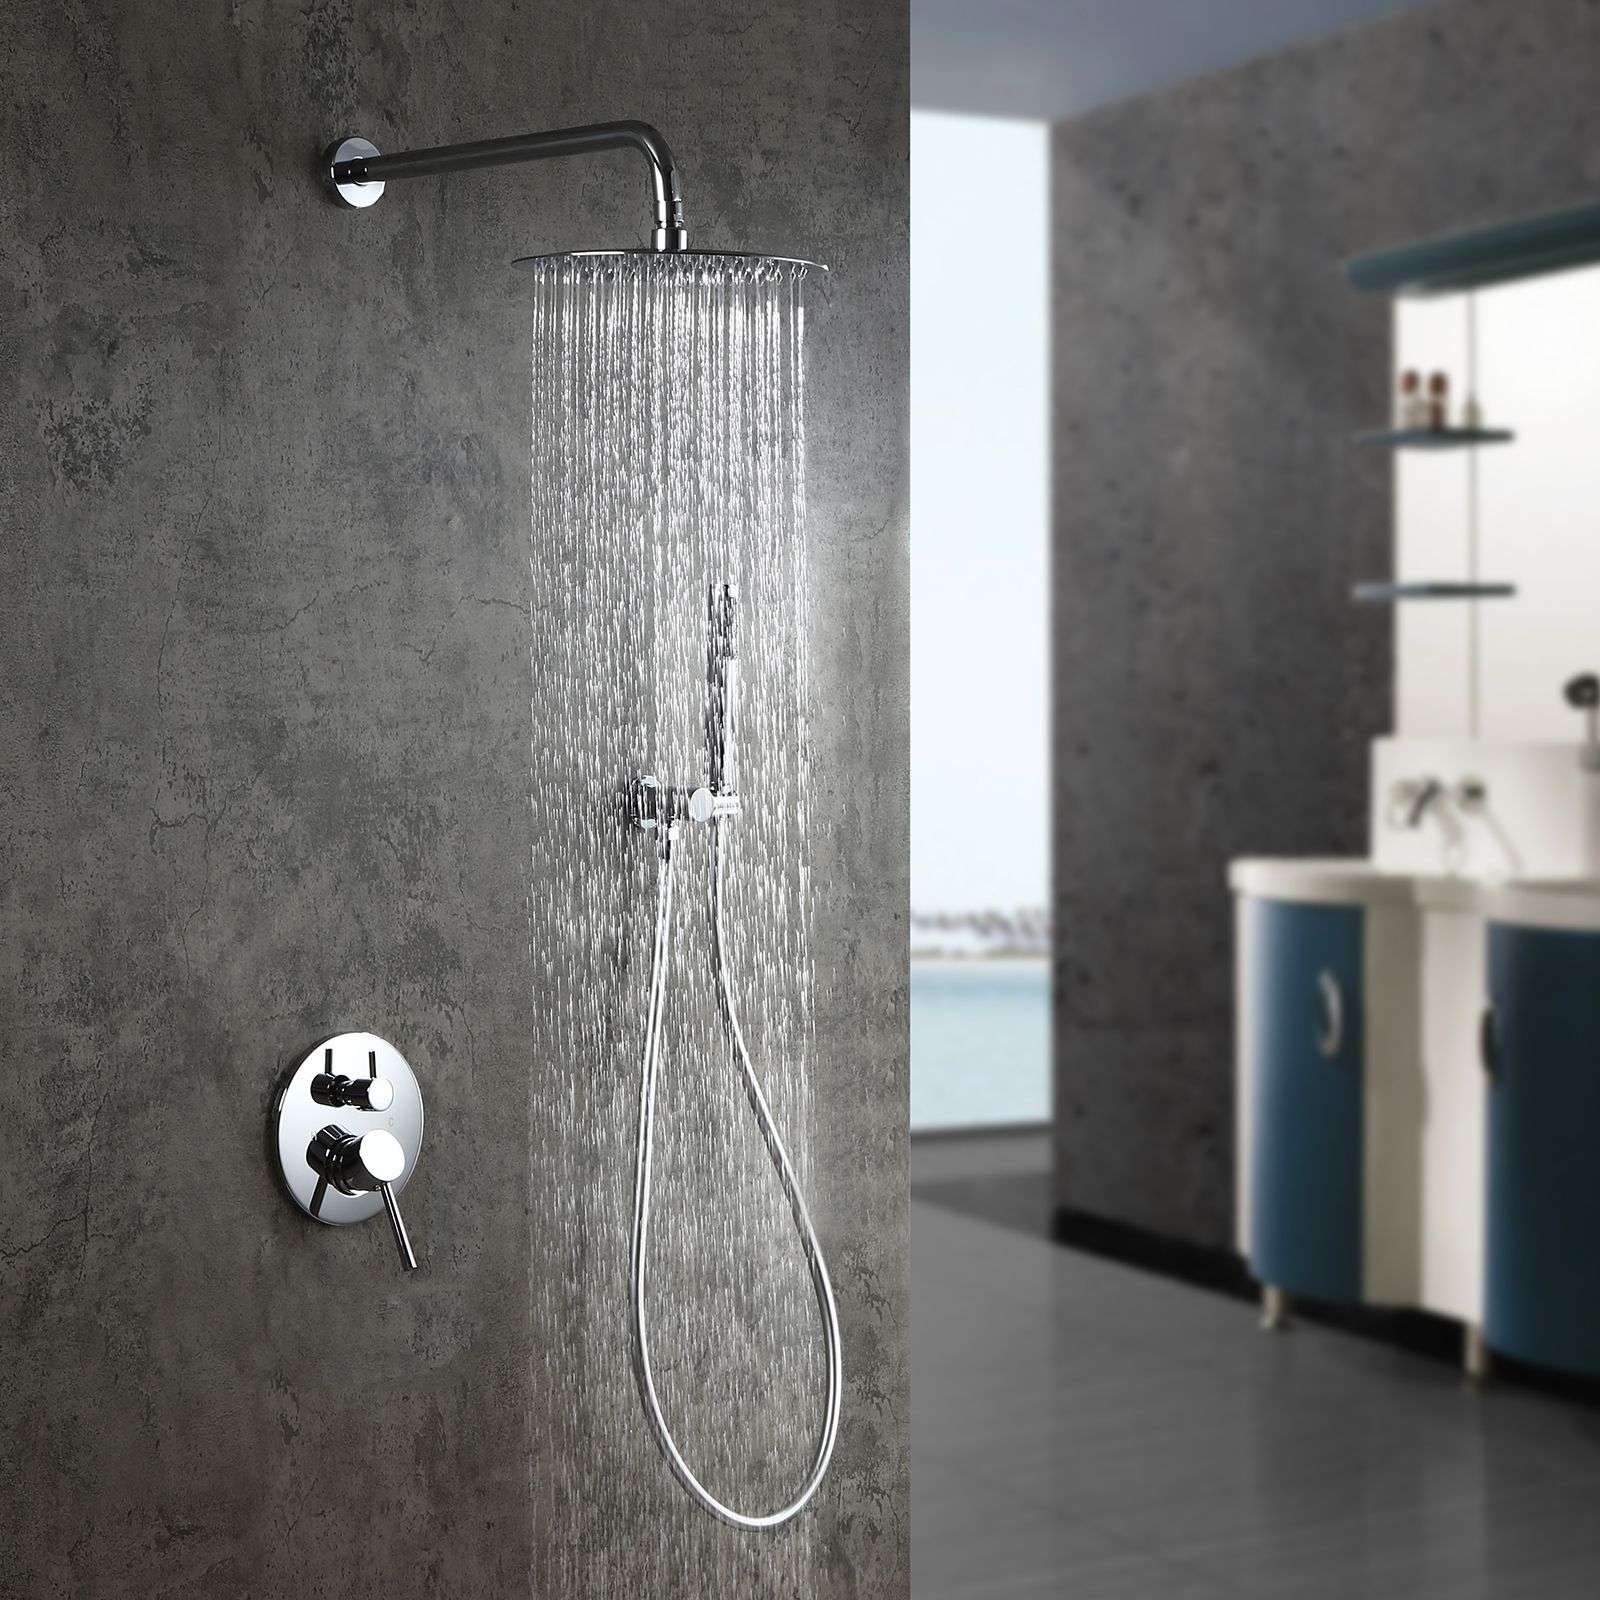 Modern Polished Chrome Wall Mounted Rain Shower System With 12 Round Rainfall Shower Head Handheld Shower Set Solid Brass In 2021 Wall Mount Rain Shower Rain Shower System Rainfall Shower Head [ jpg ]